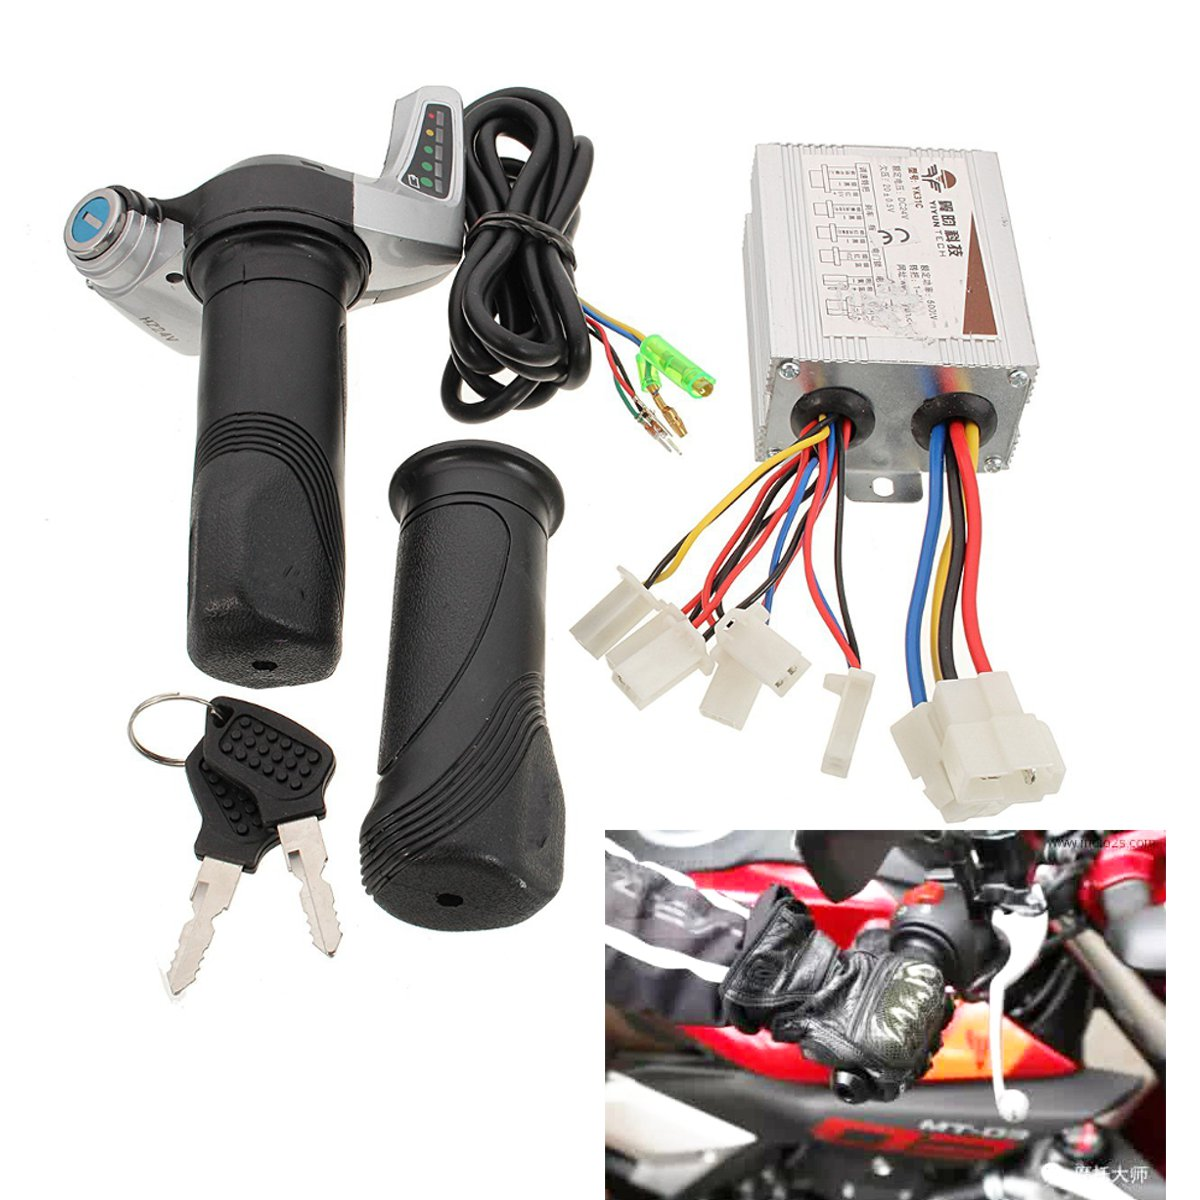 24V 500W Motor Brushed Controller Throttle Twist Grip For Electric Bicycle Scooter Power Display Motor